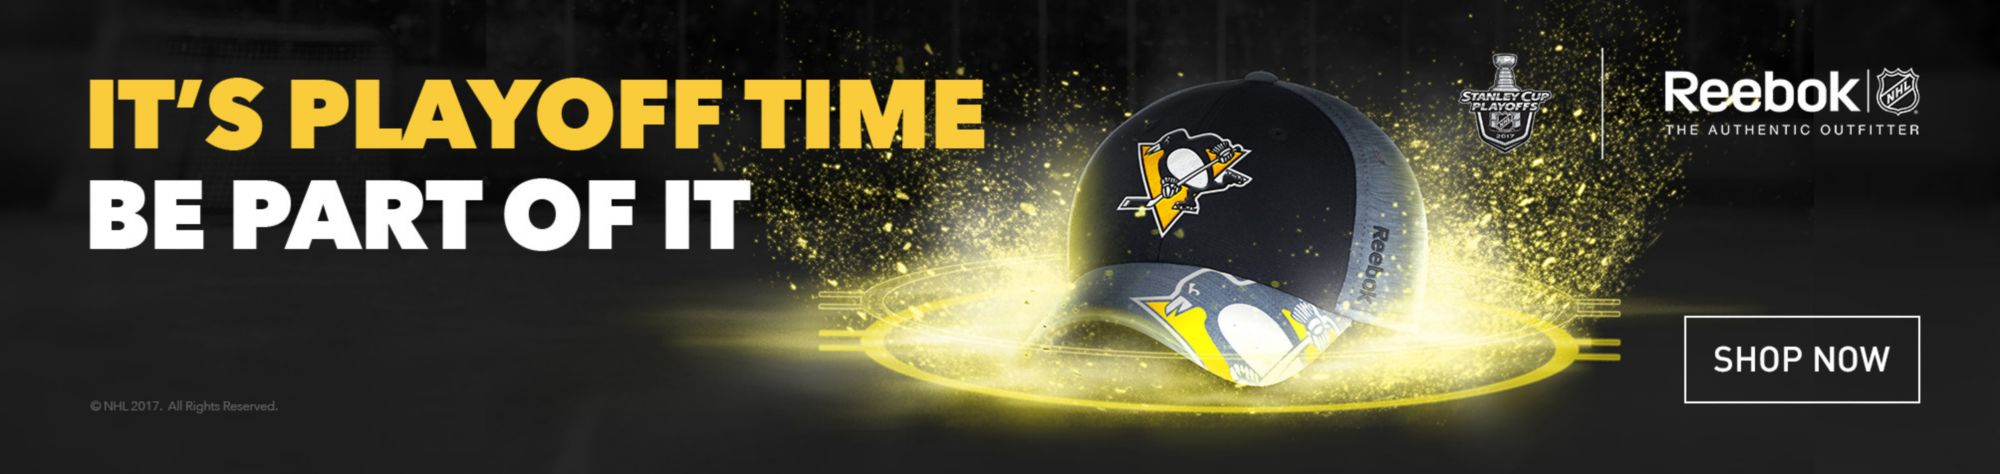 NHL Reebok Playoffs - Pittsburgh Penguins